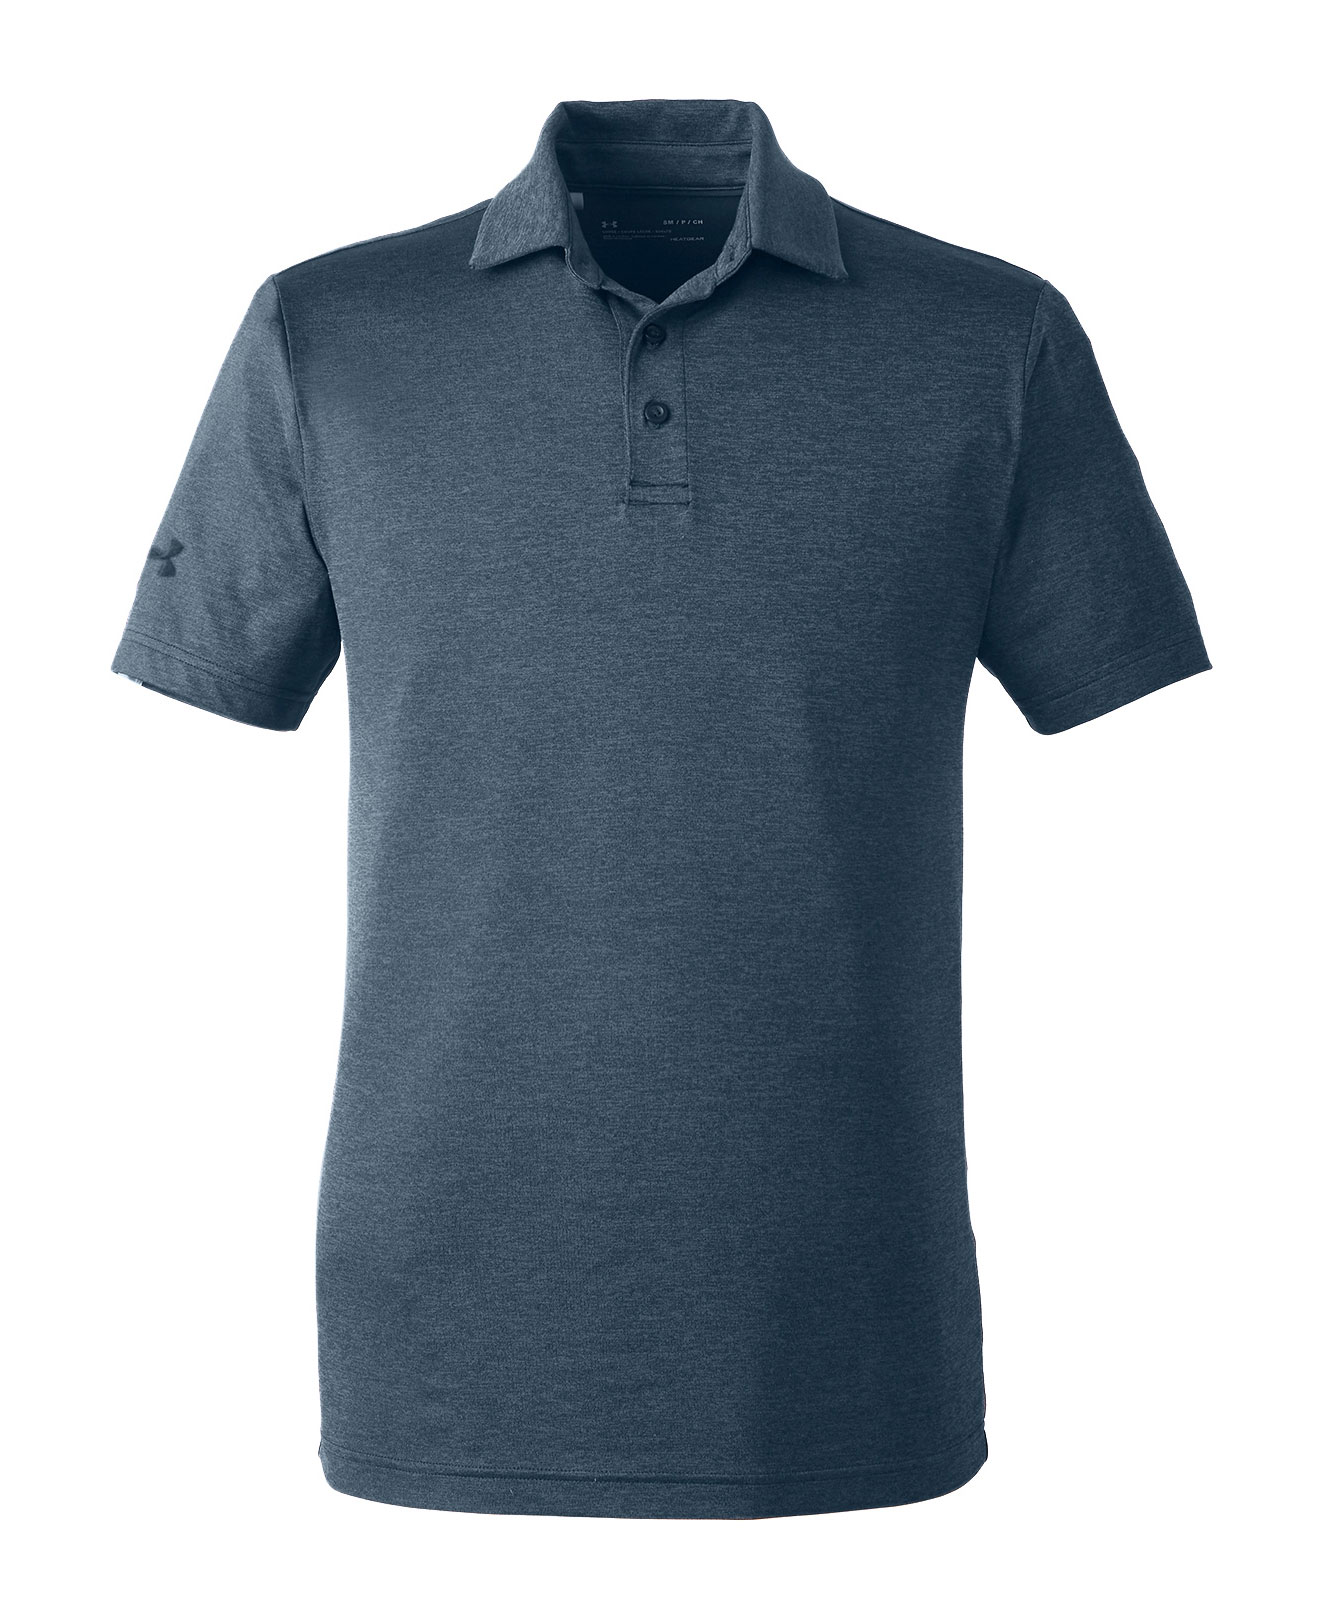 Under Armour Mens Corporate Playoff Polo